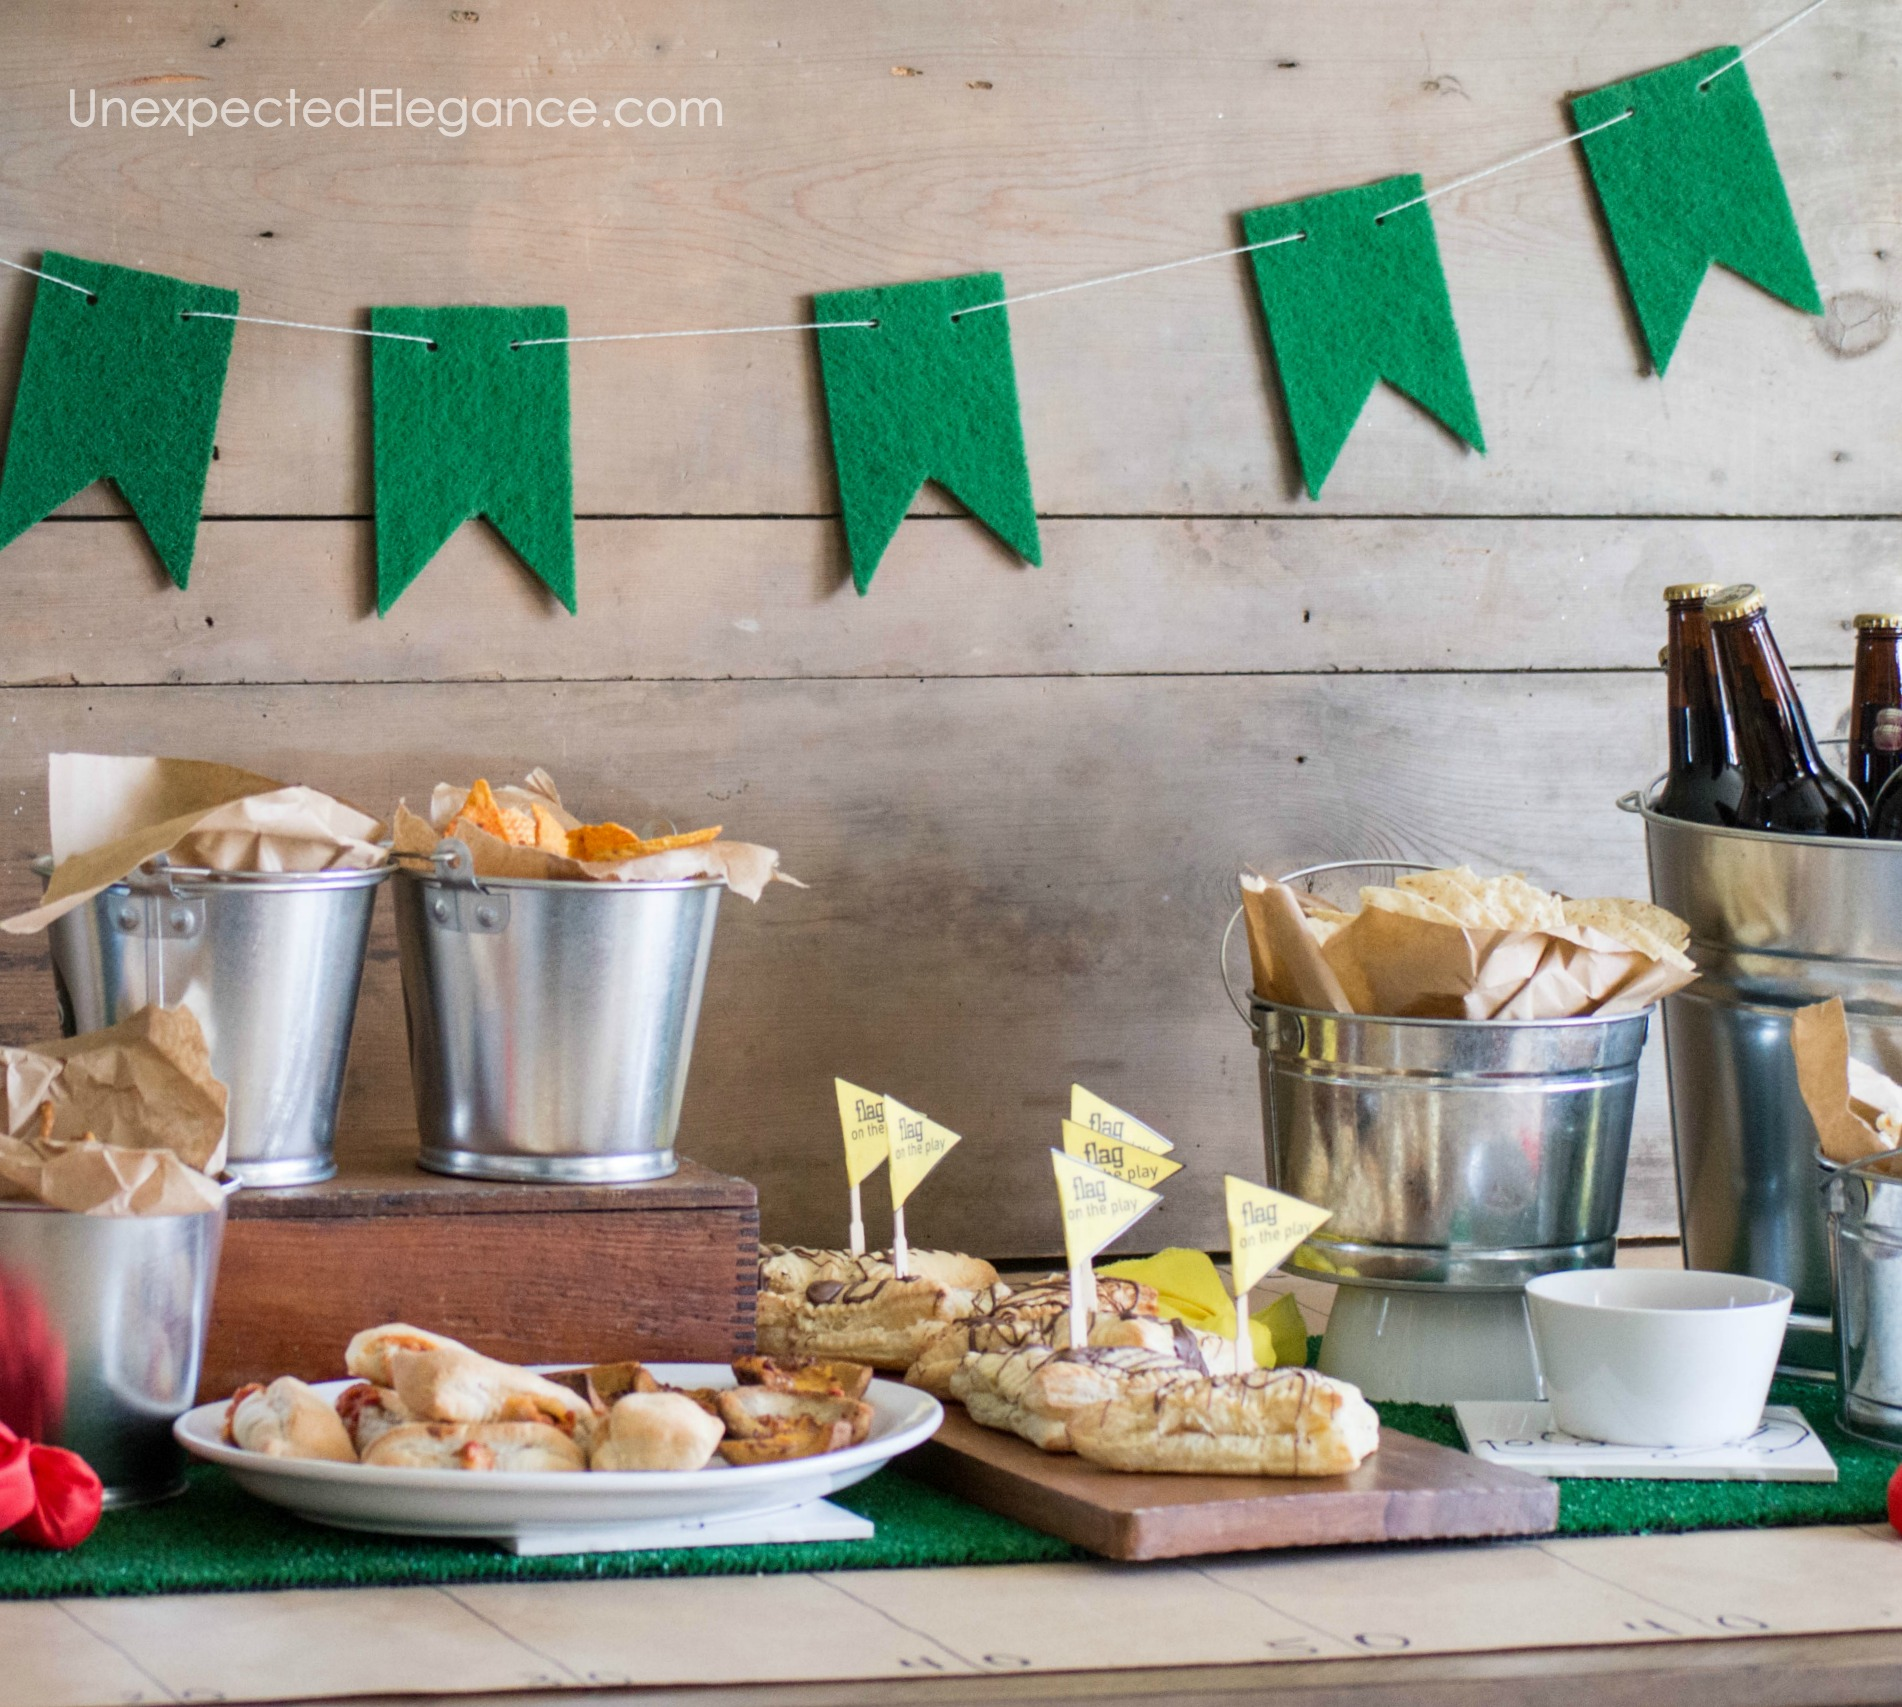 EASY Super Bowl Party Decor Ideas Unexpected Elegance